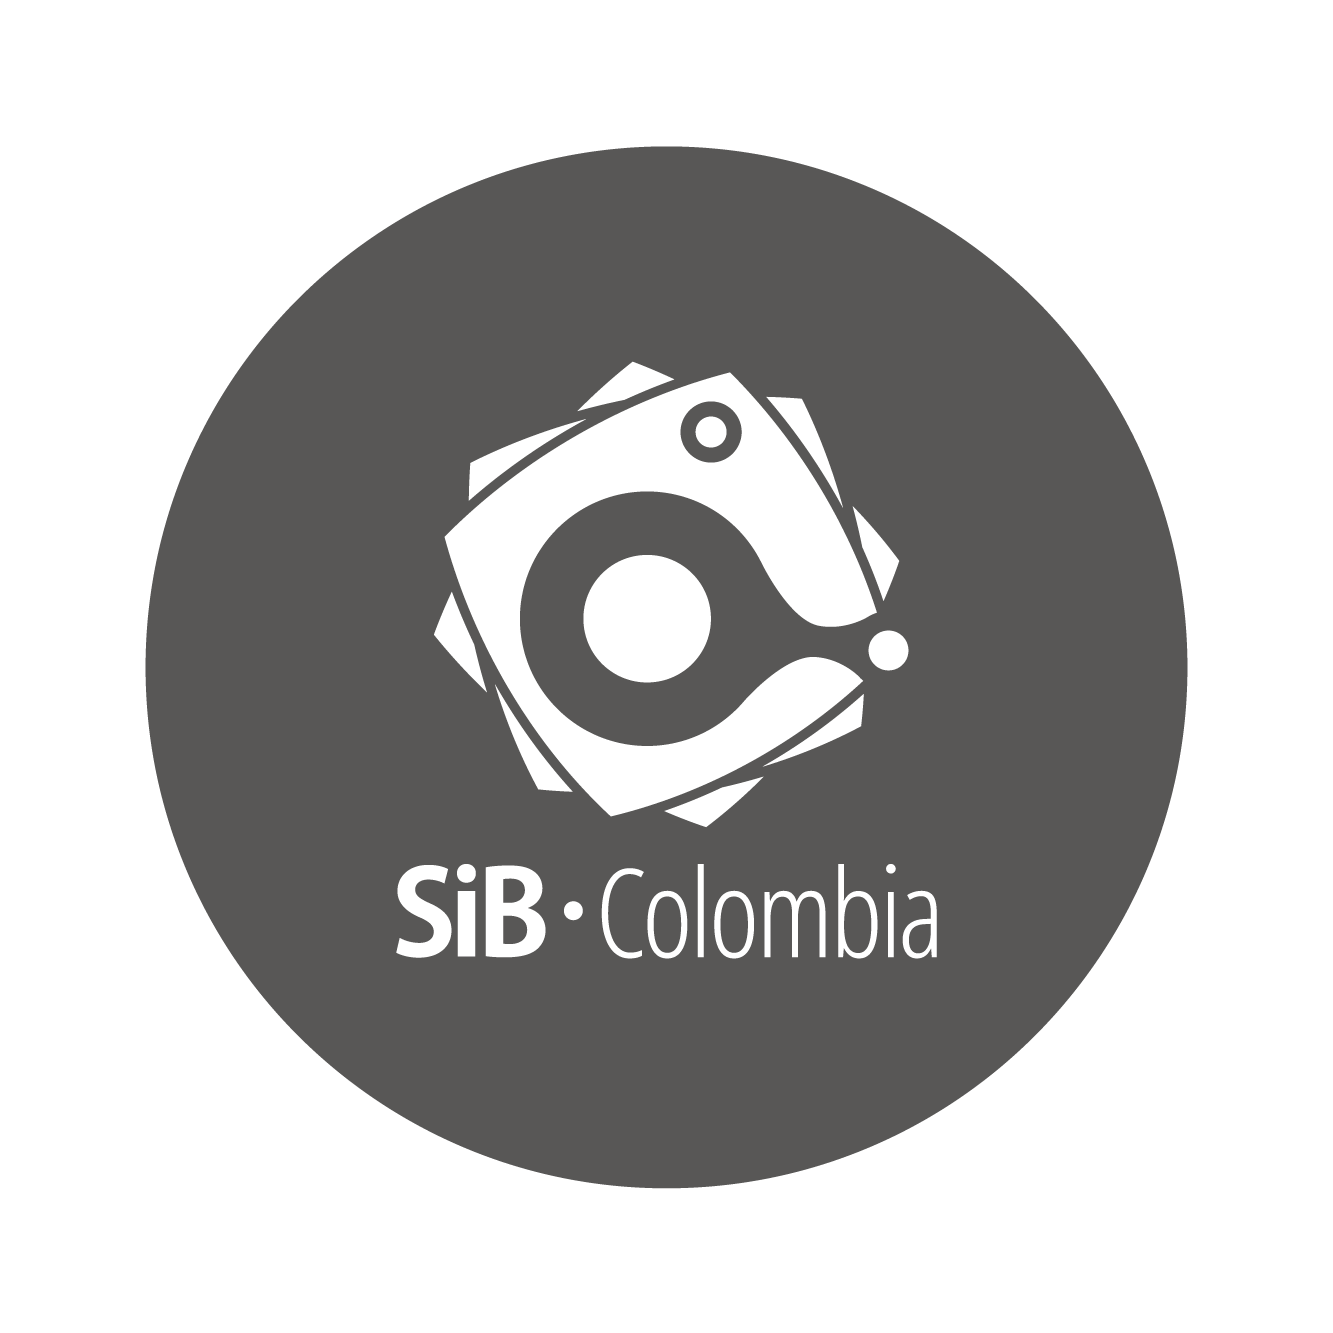 sib-colombia-29